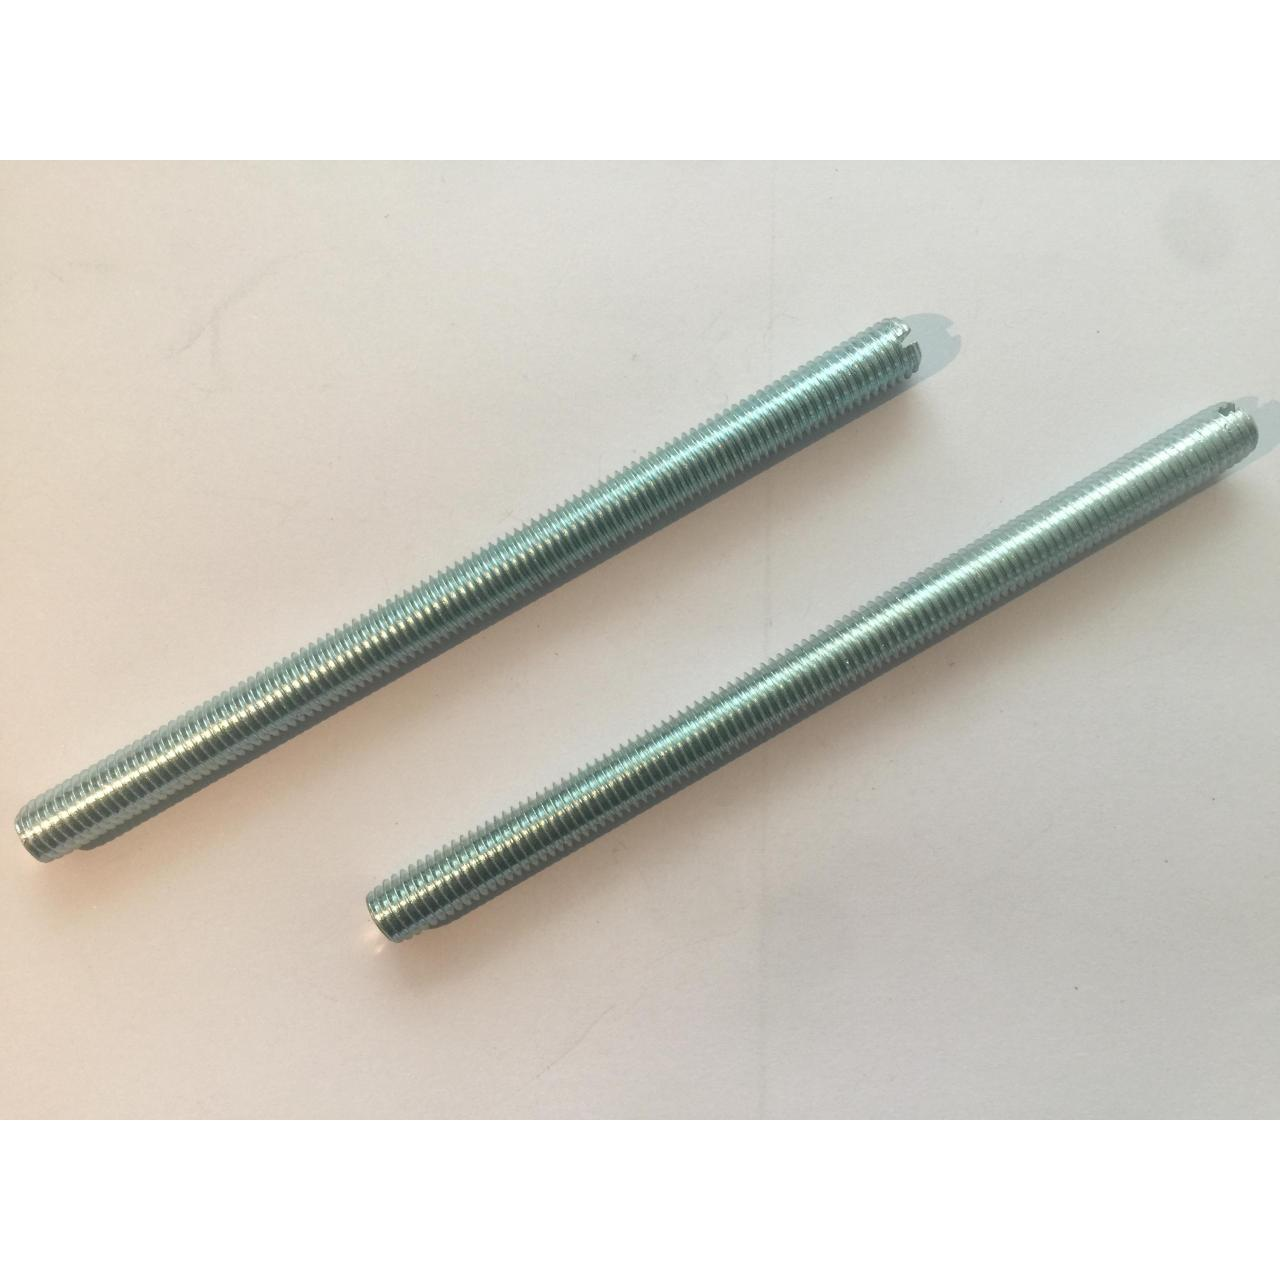 Slotted Threaded Rods